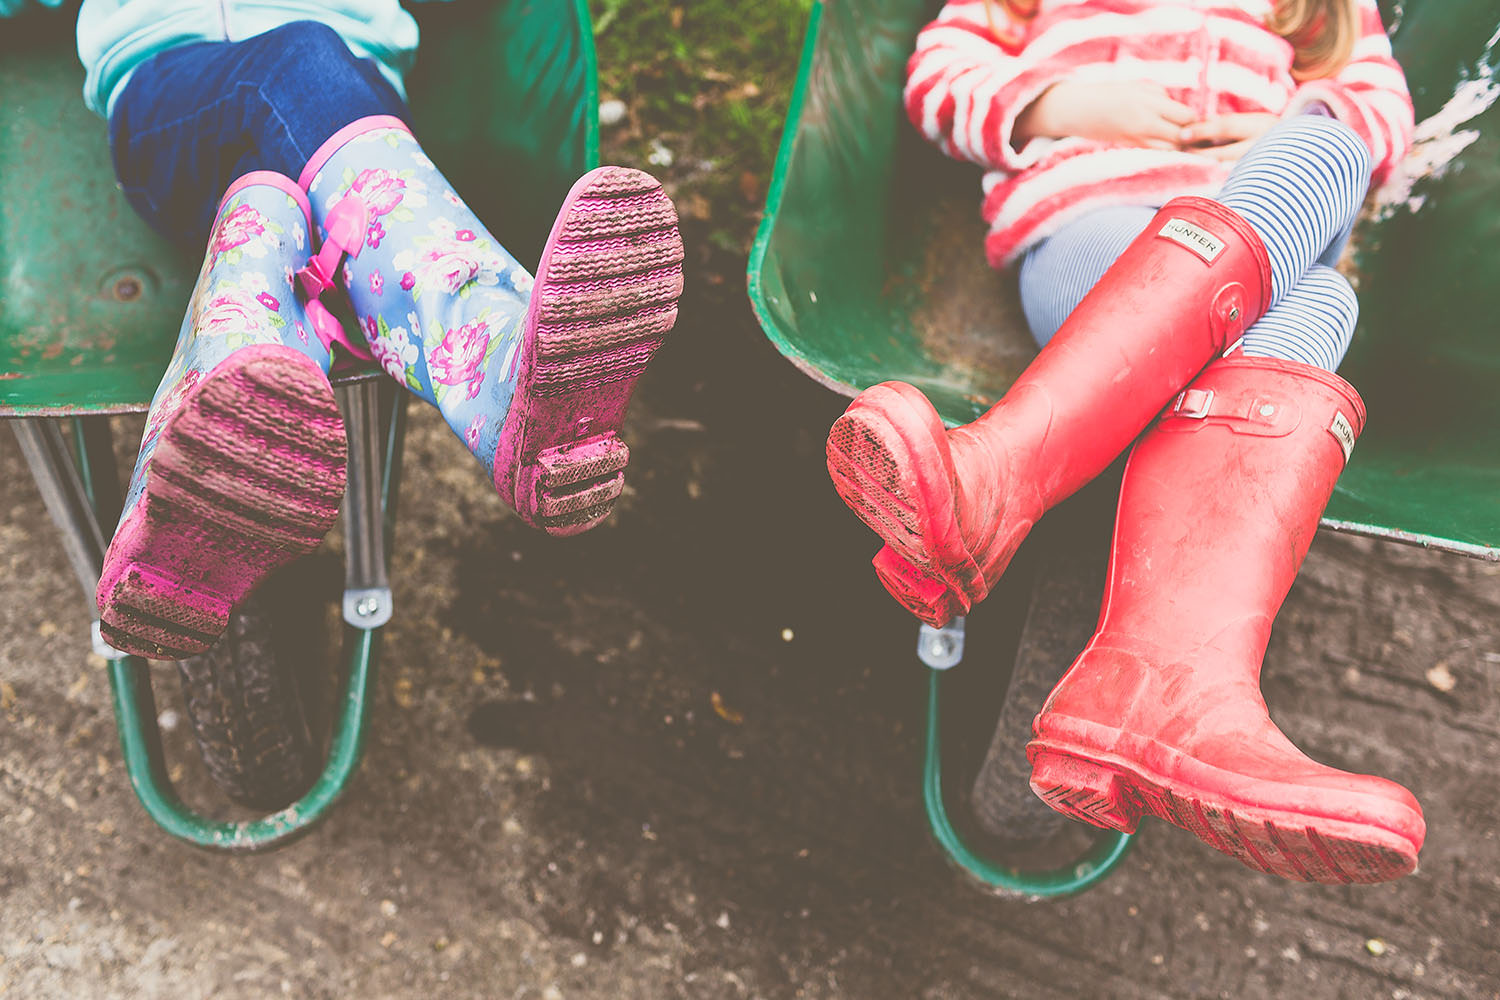 Children sitting in a wheel barrow with wellies on